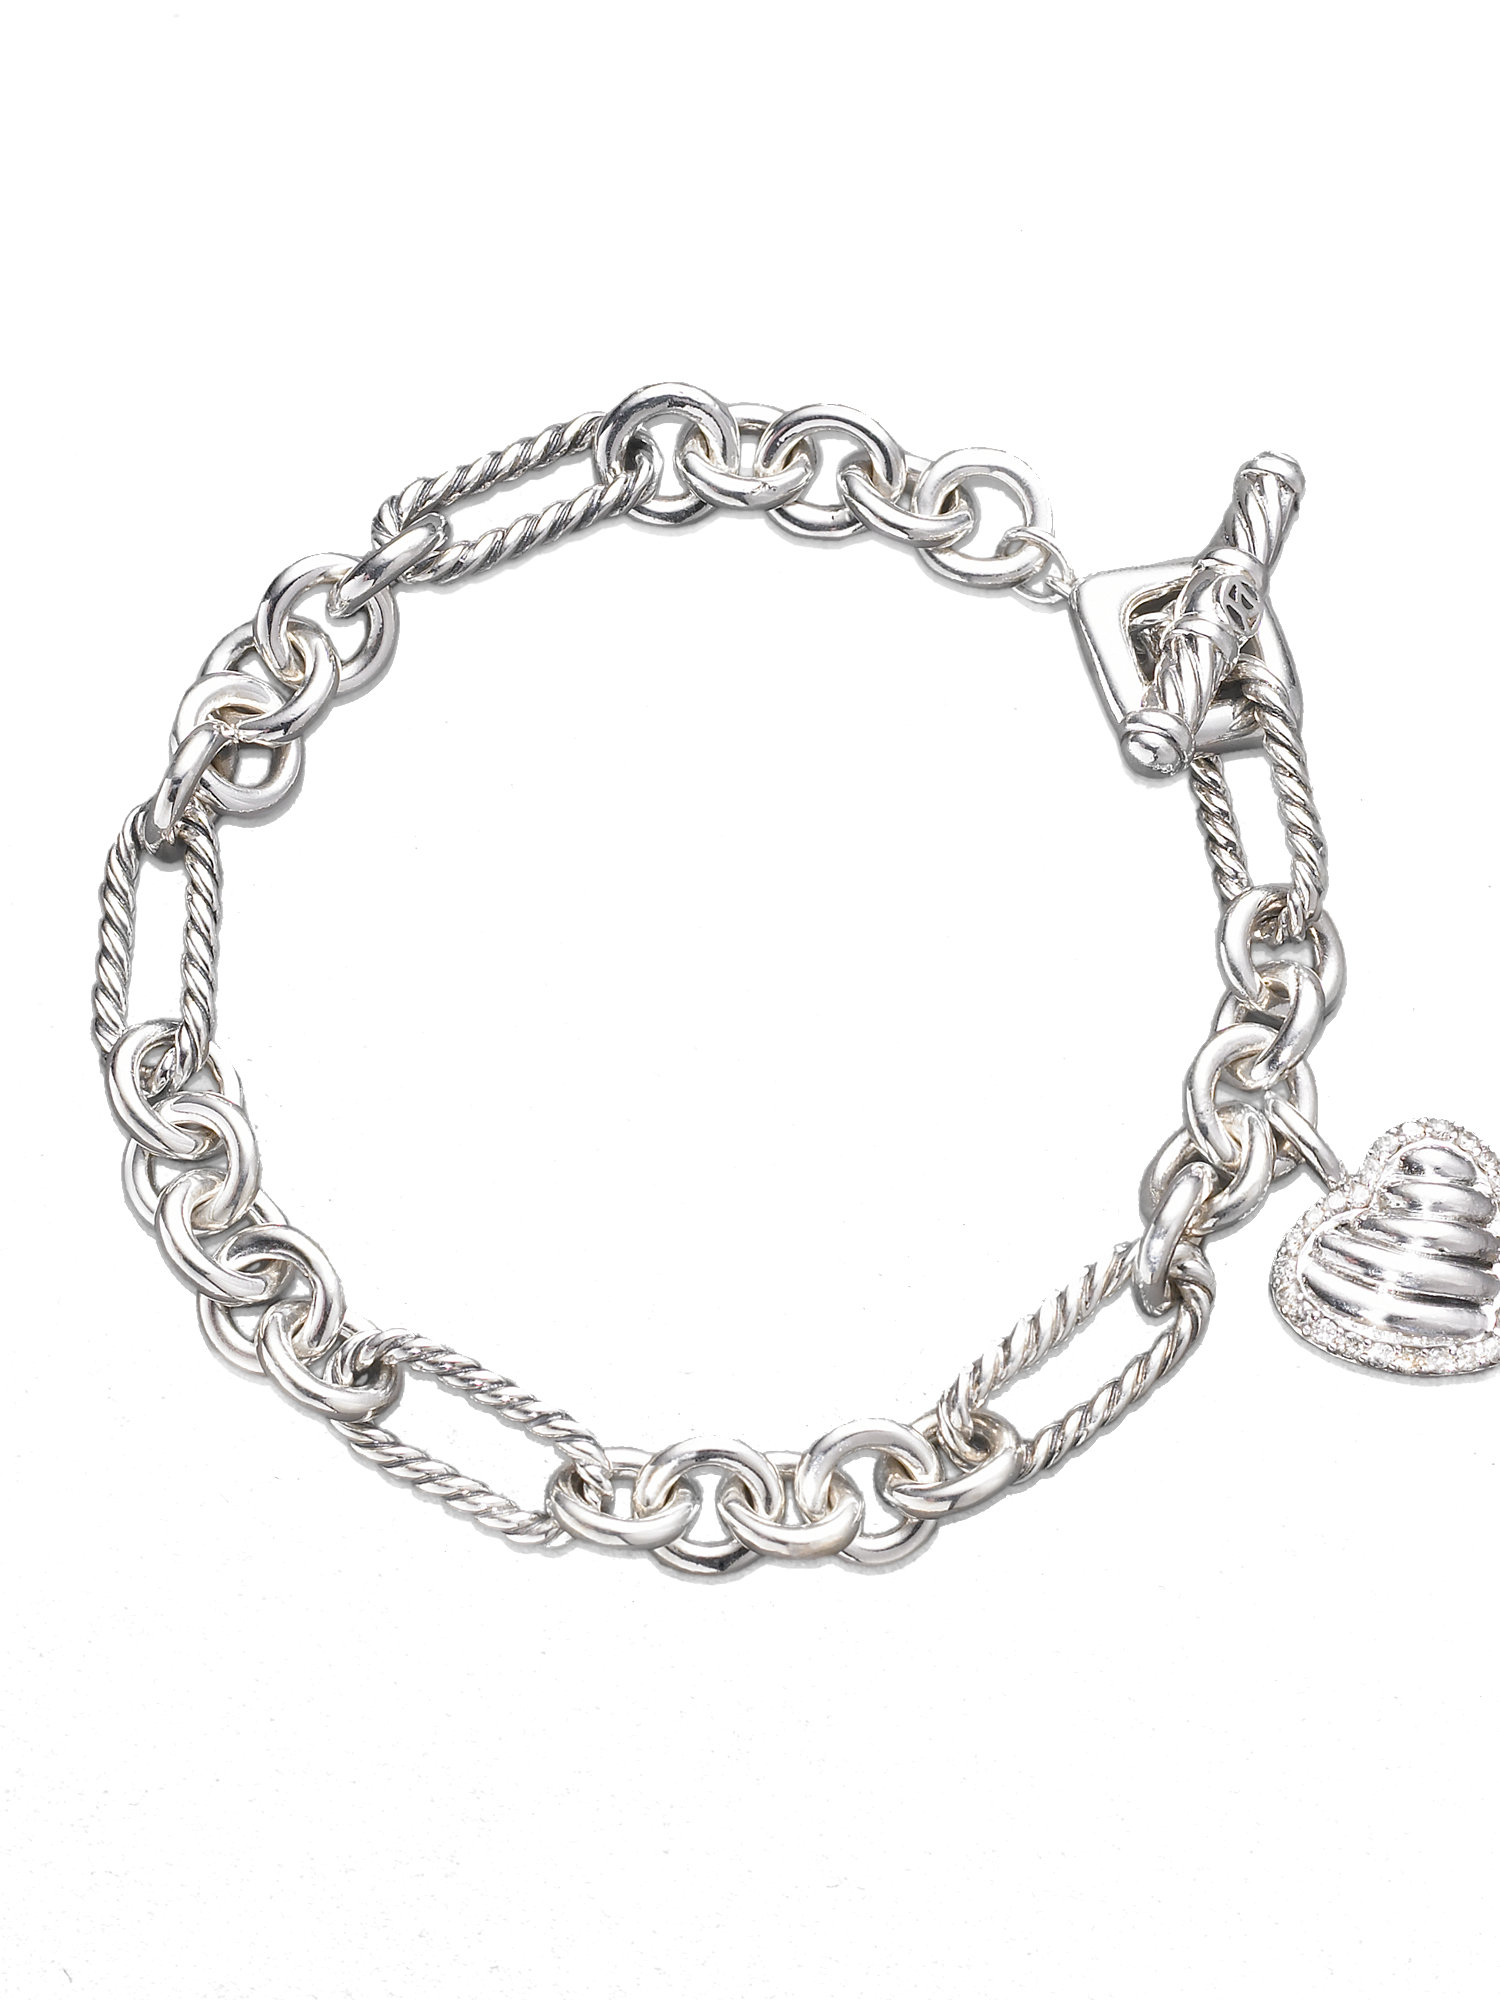 david yurman charm bracelet david yurman cable charm bracelet with diamonds in 8114